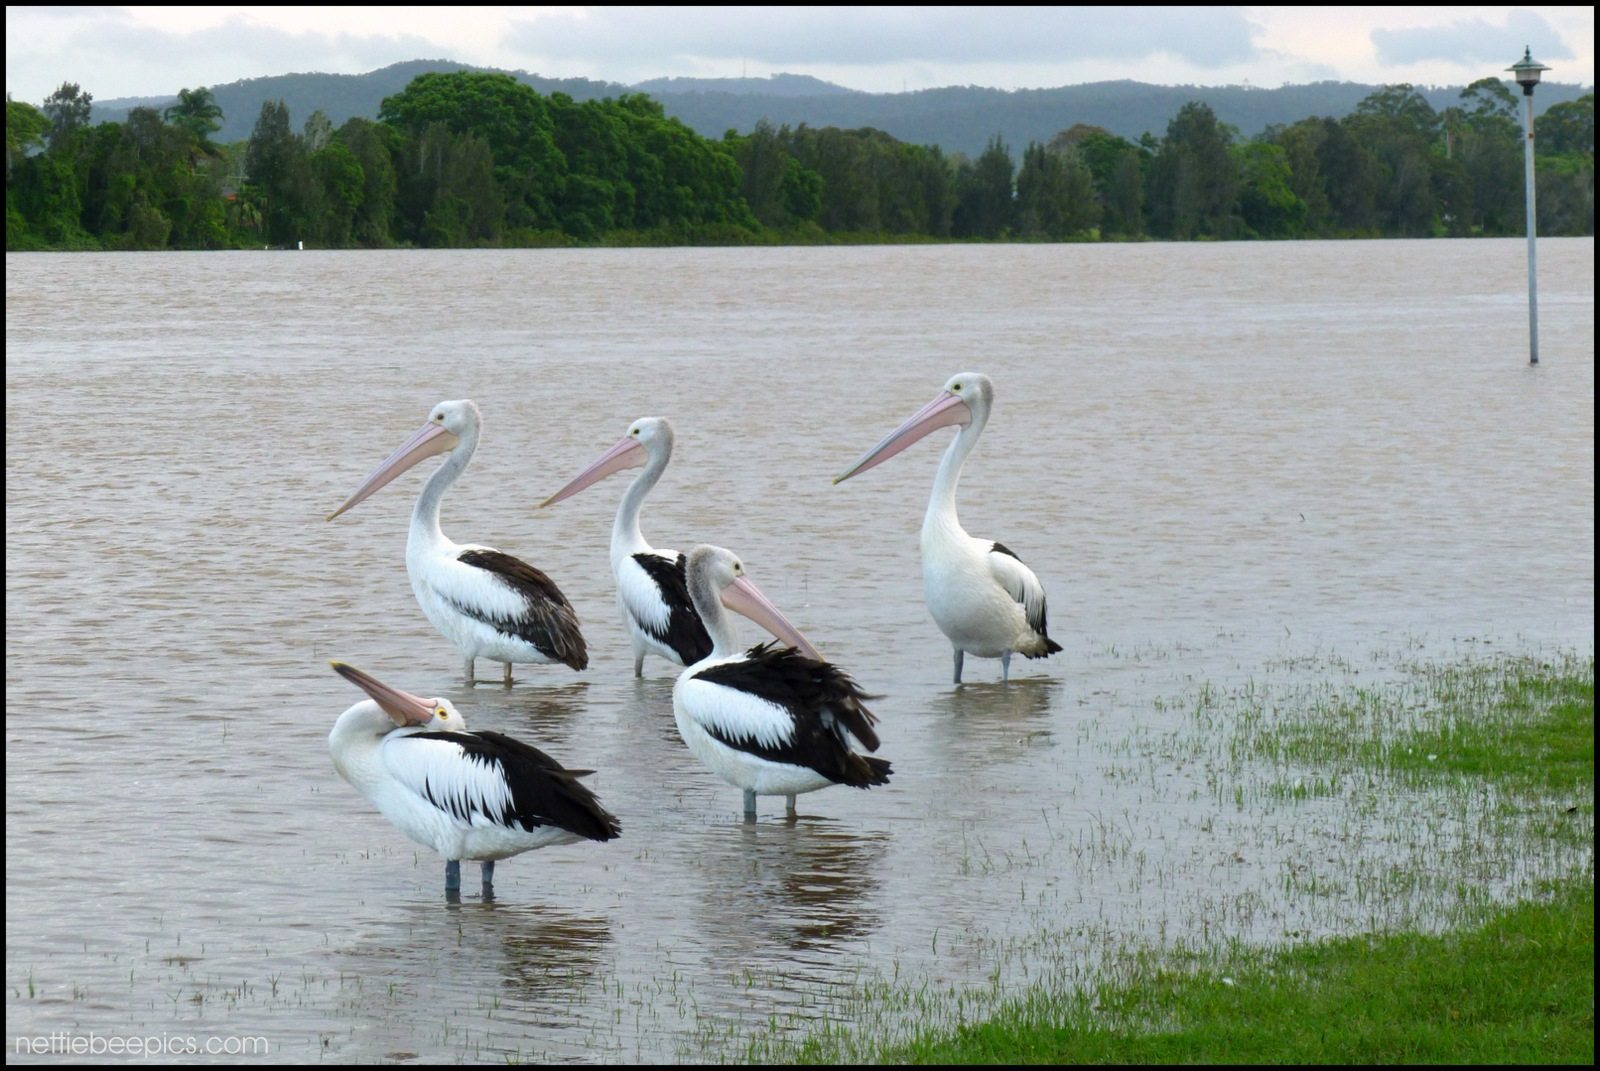 Pelicans in the Park and River at the Same Time by Nettie Bee